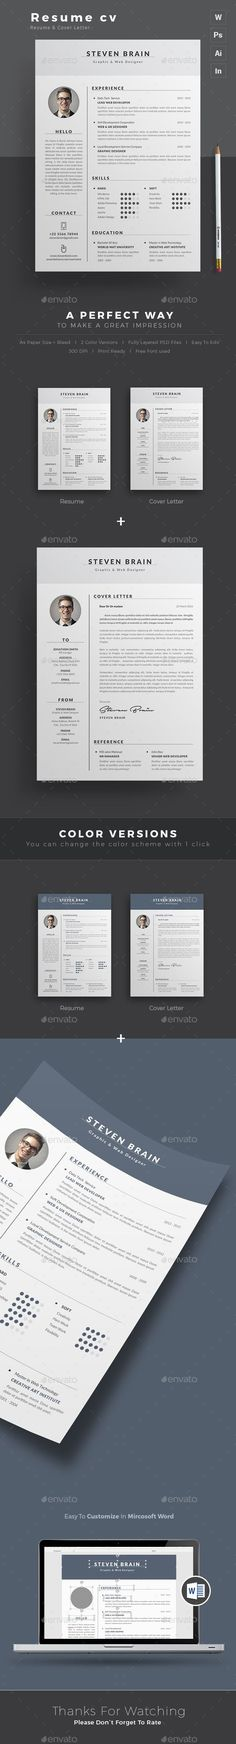 creative cv template in ms word  including matching cover letter template  fully editable files